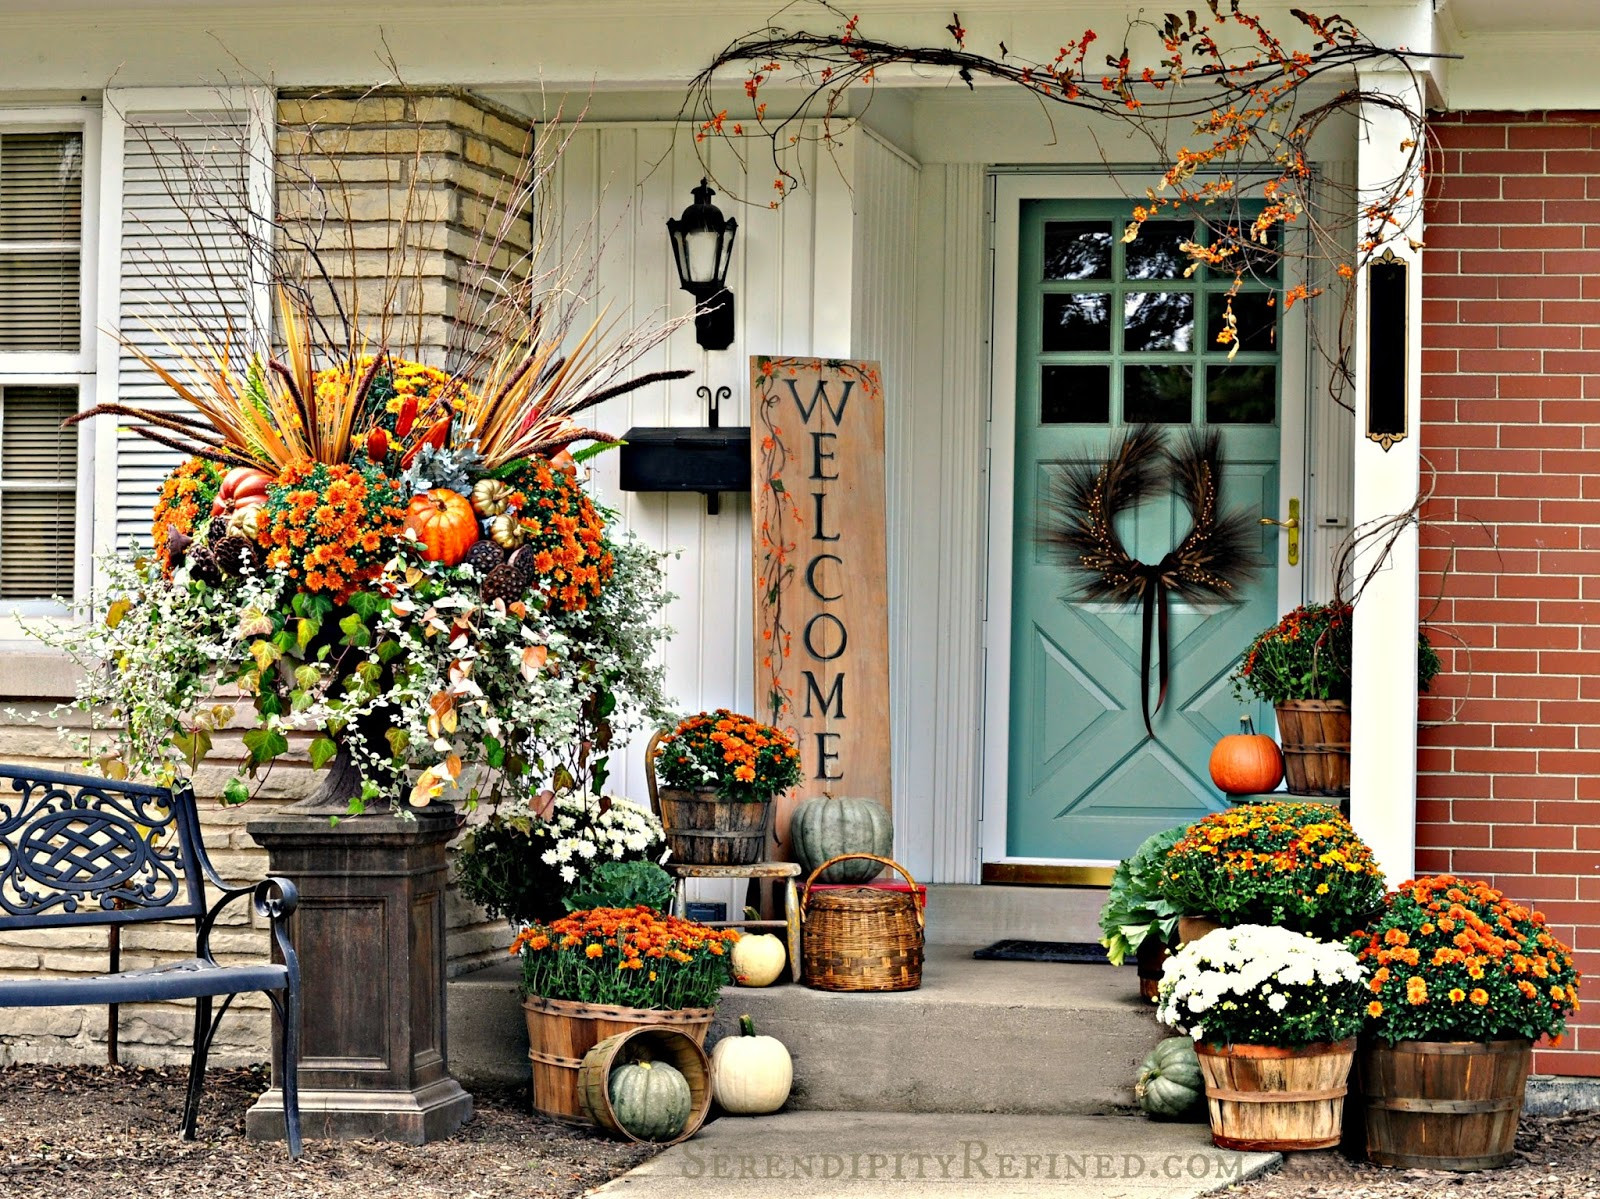 Fall Decorations Porch  Serendipity Refined Blog Fall Harvest Porch Decor with